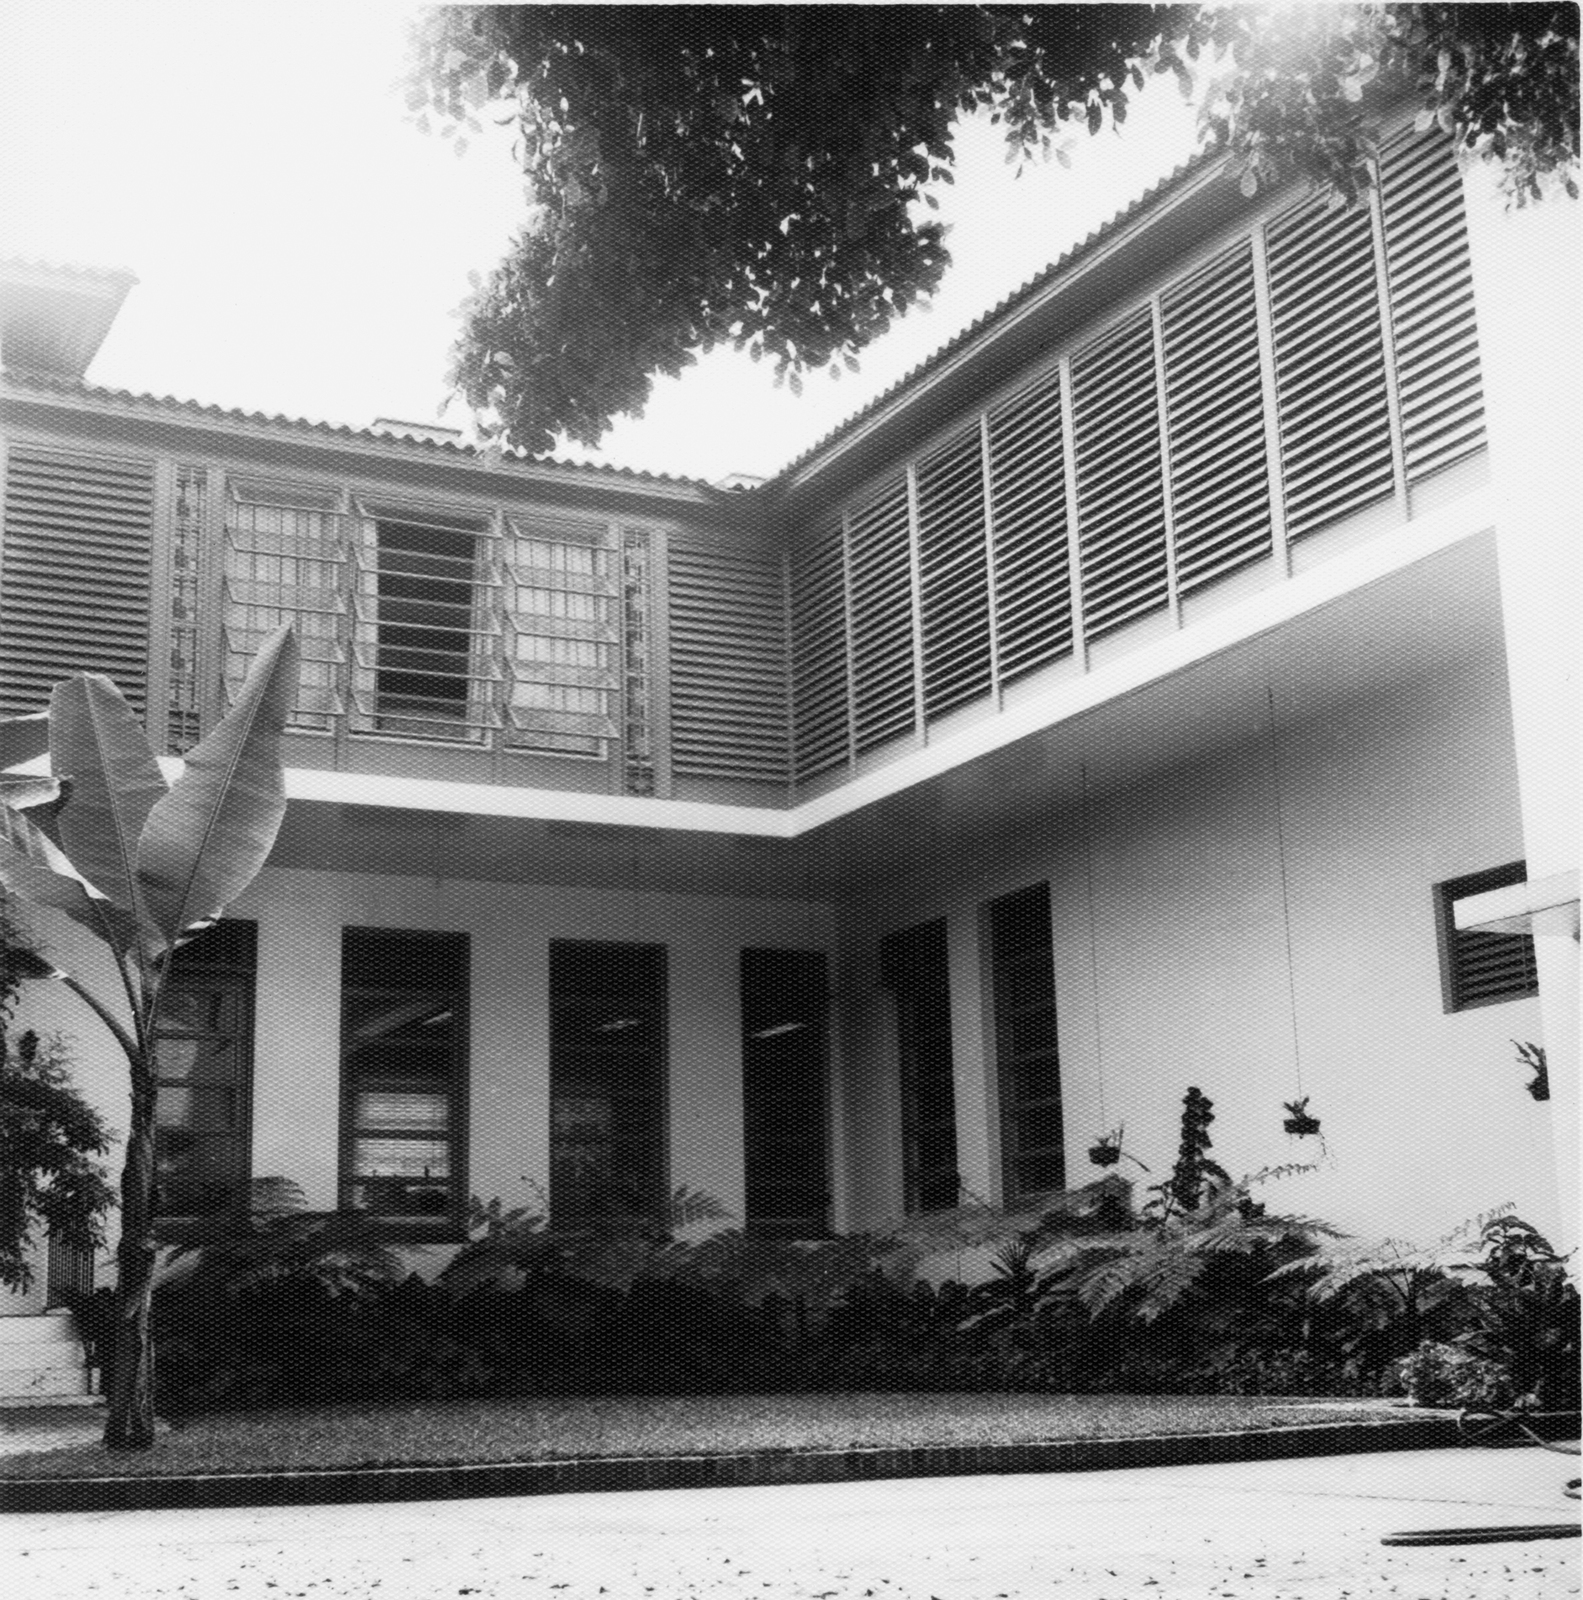 Belem - Consulate Office Building - 1972